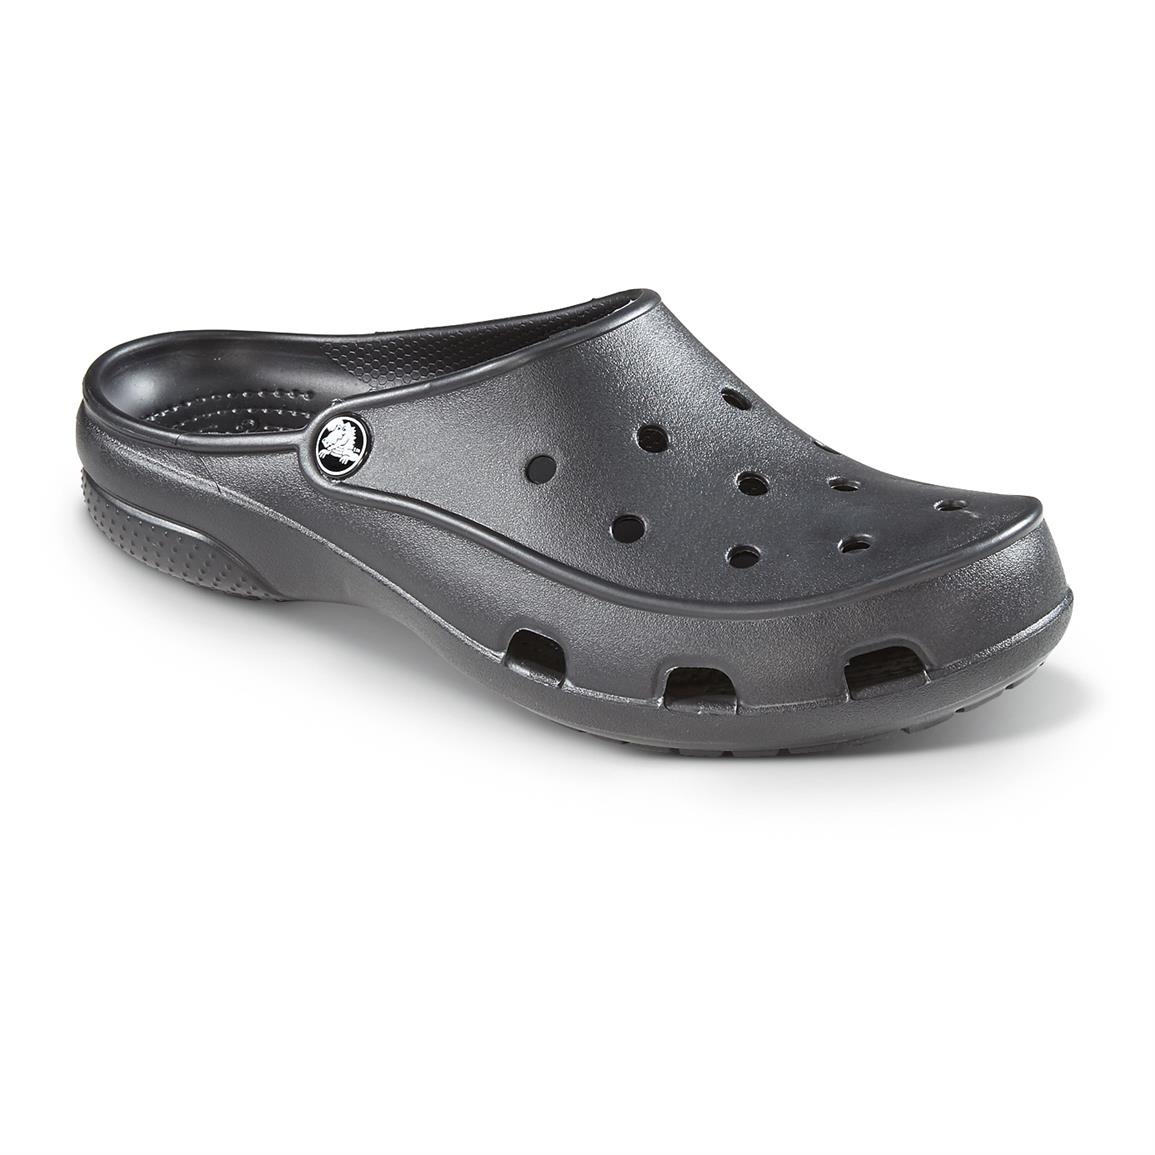 Crocs Women's Freesail Clogs, Black